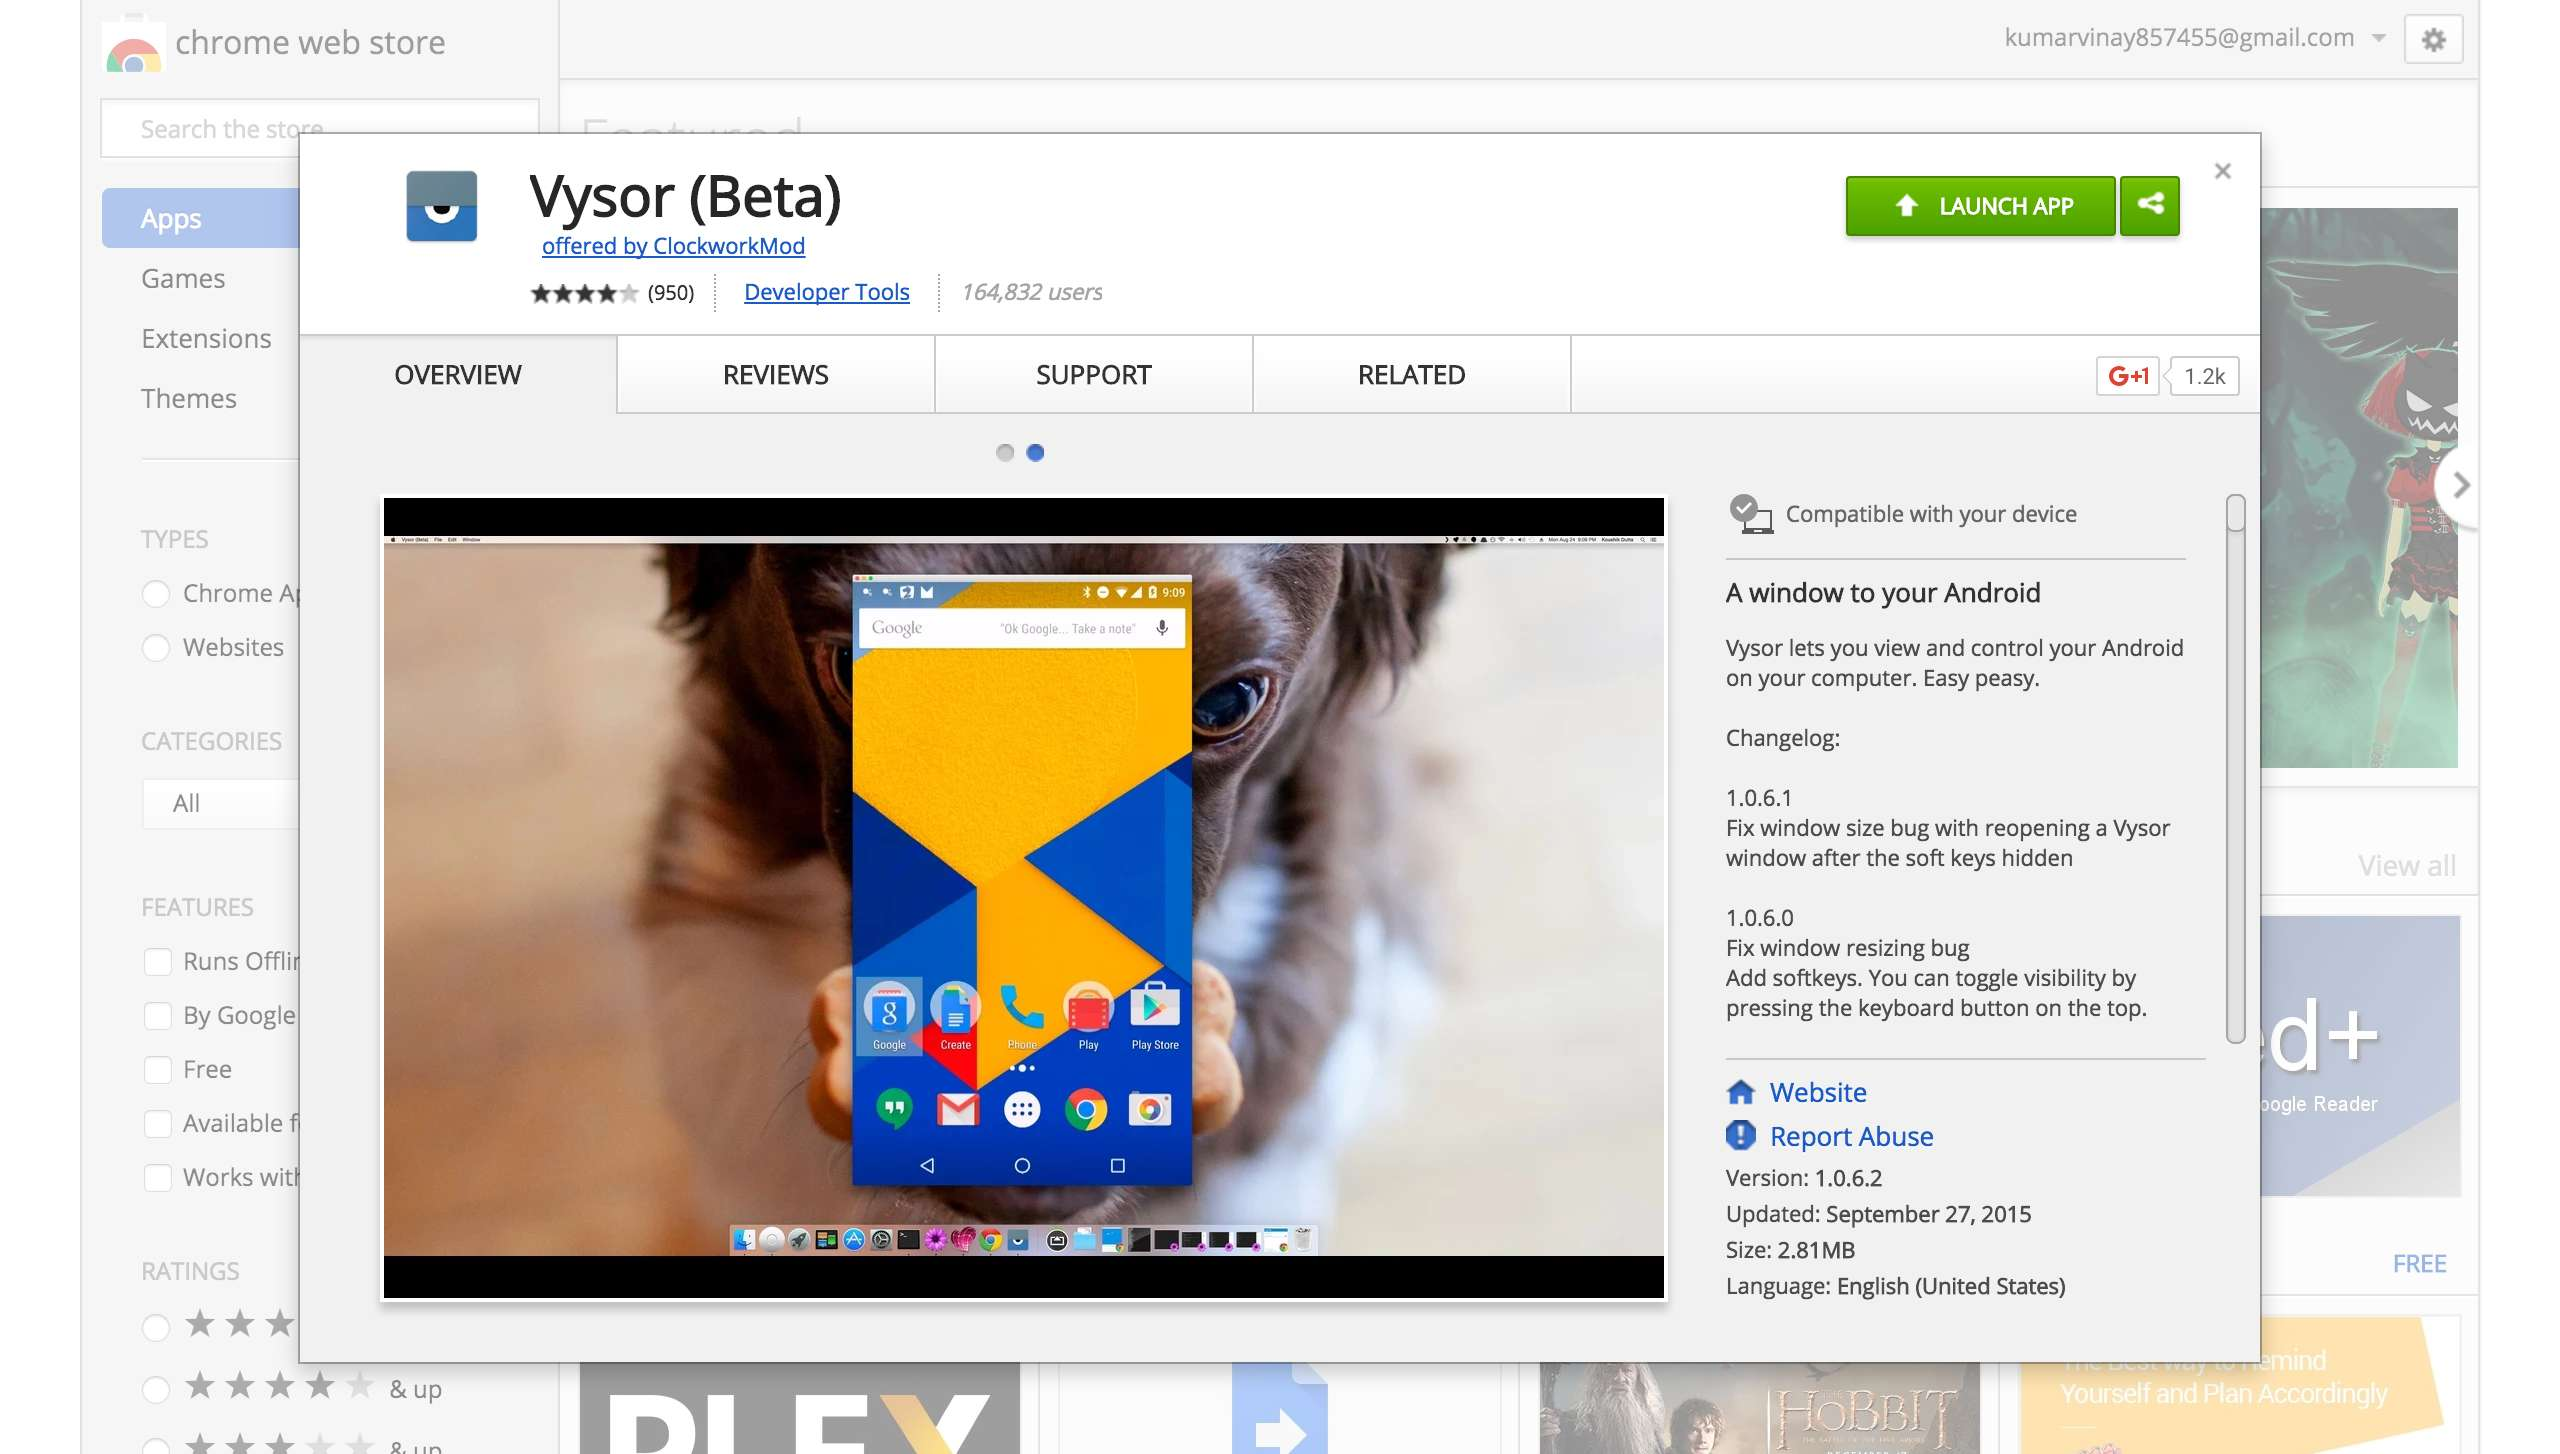 Vysor App in Chrome Web Store